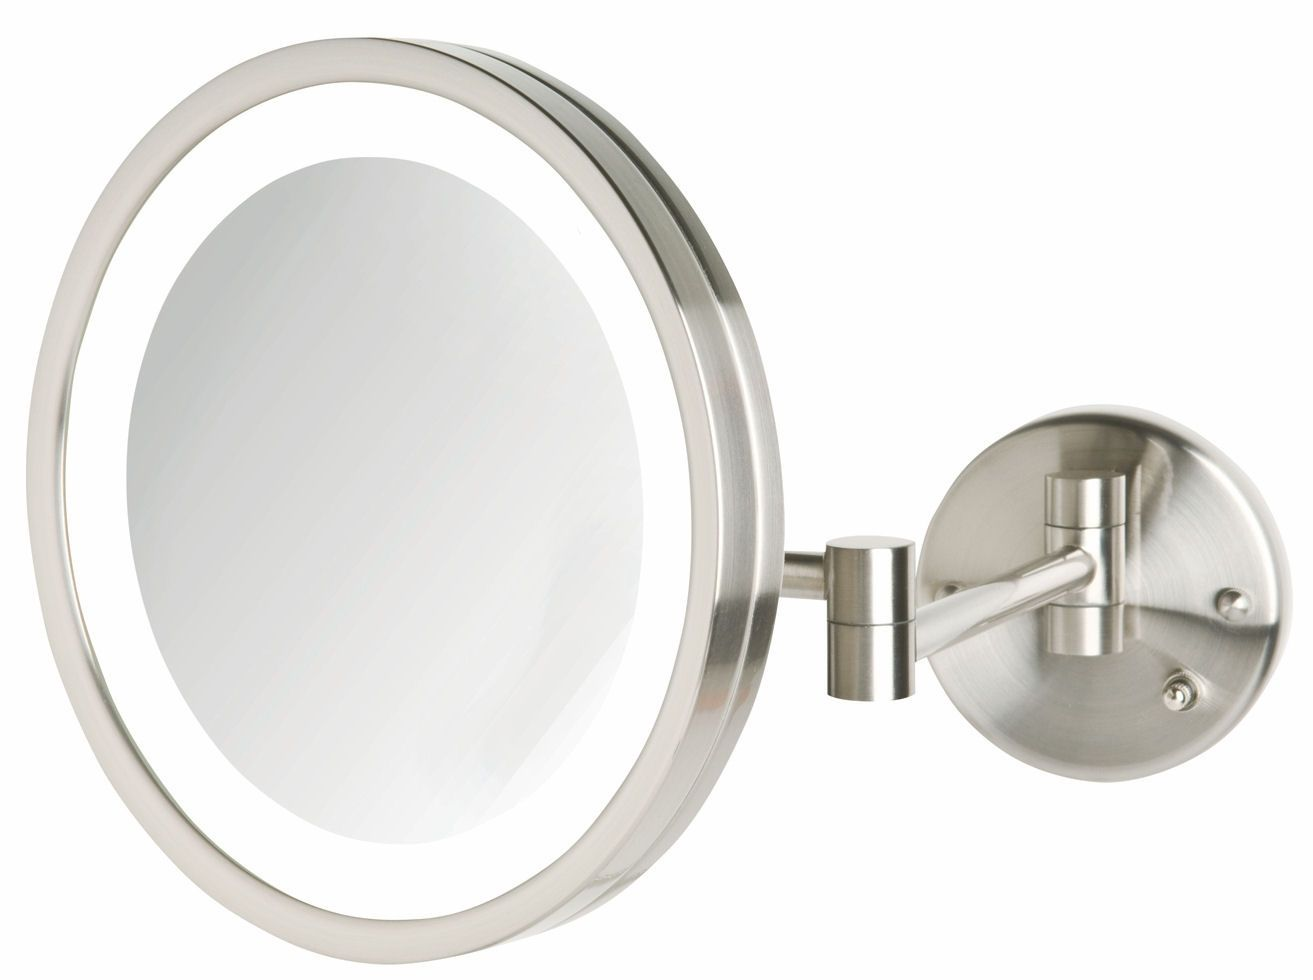 10x lighted wall mounted magnifying mirror httpdrrw 10x lighted wall mounted magnifying mirror mozeypictures Image collections